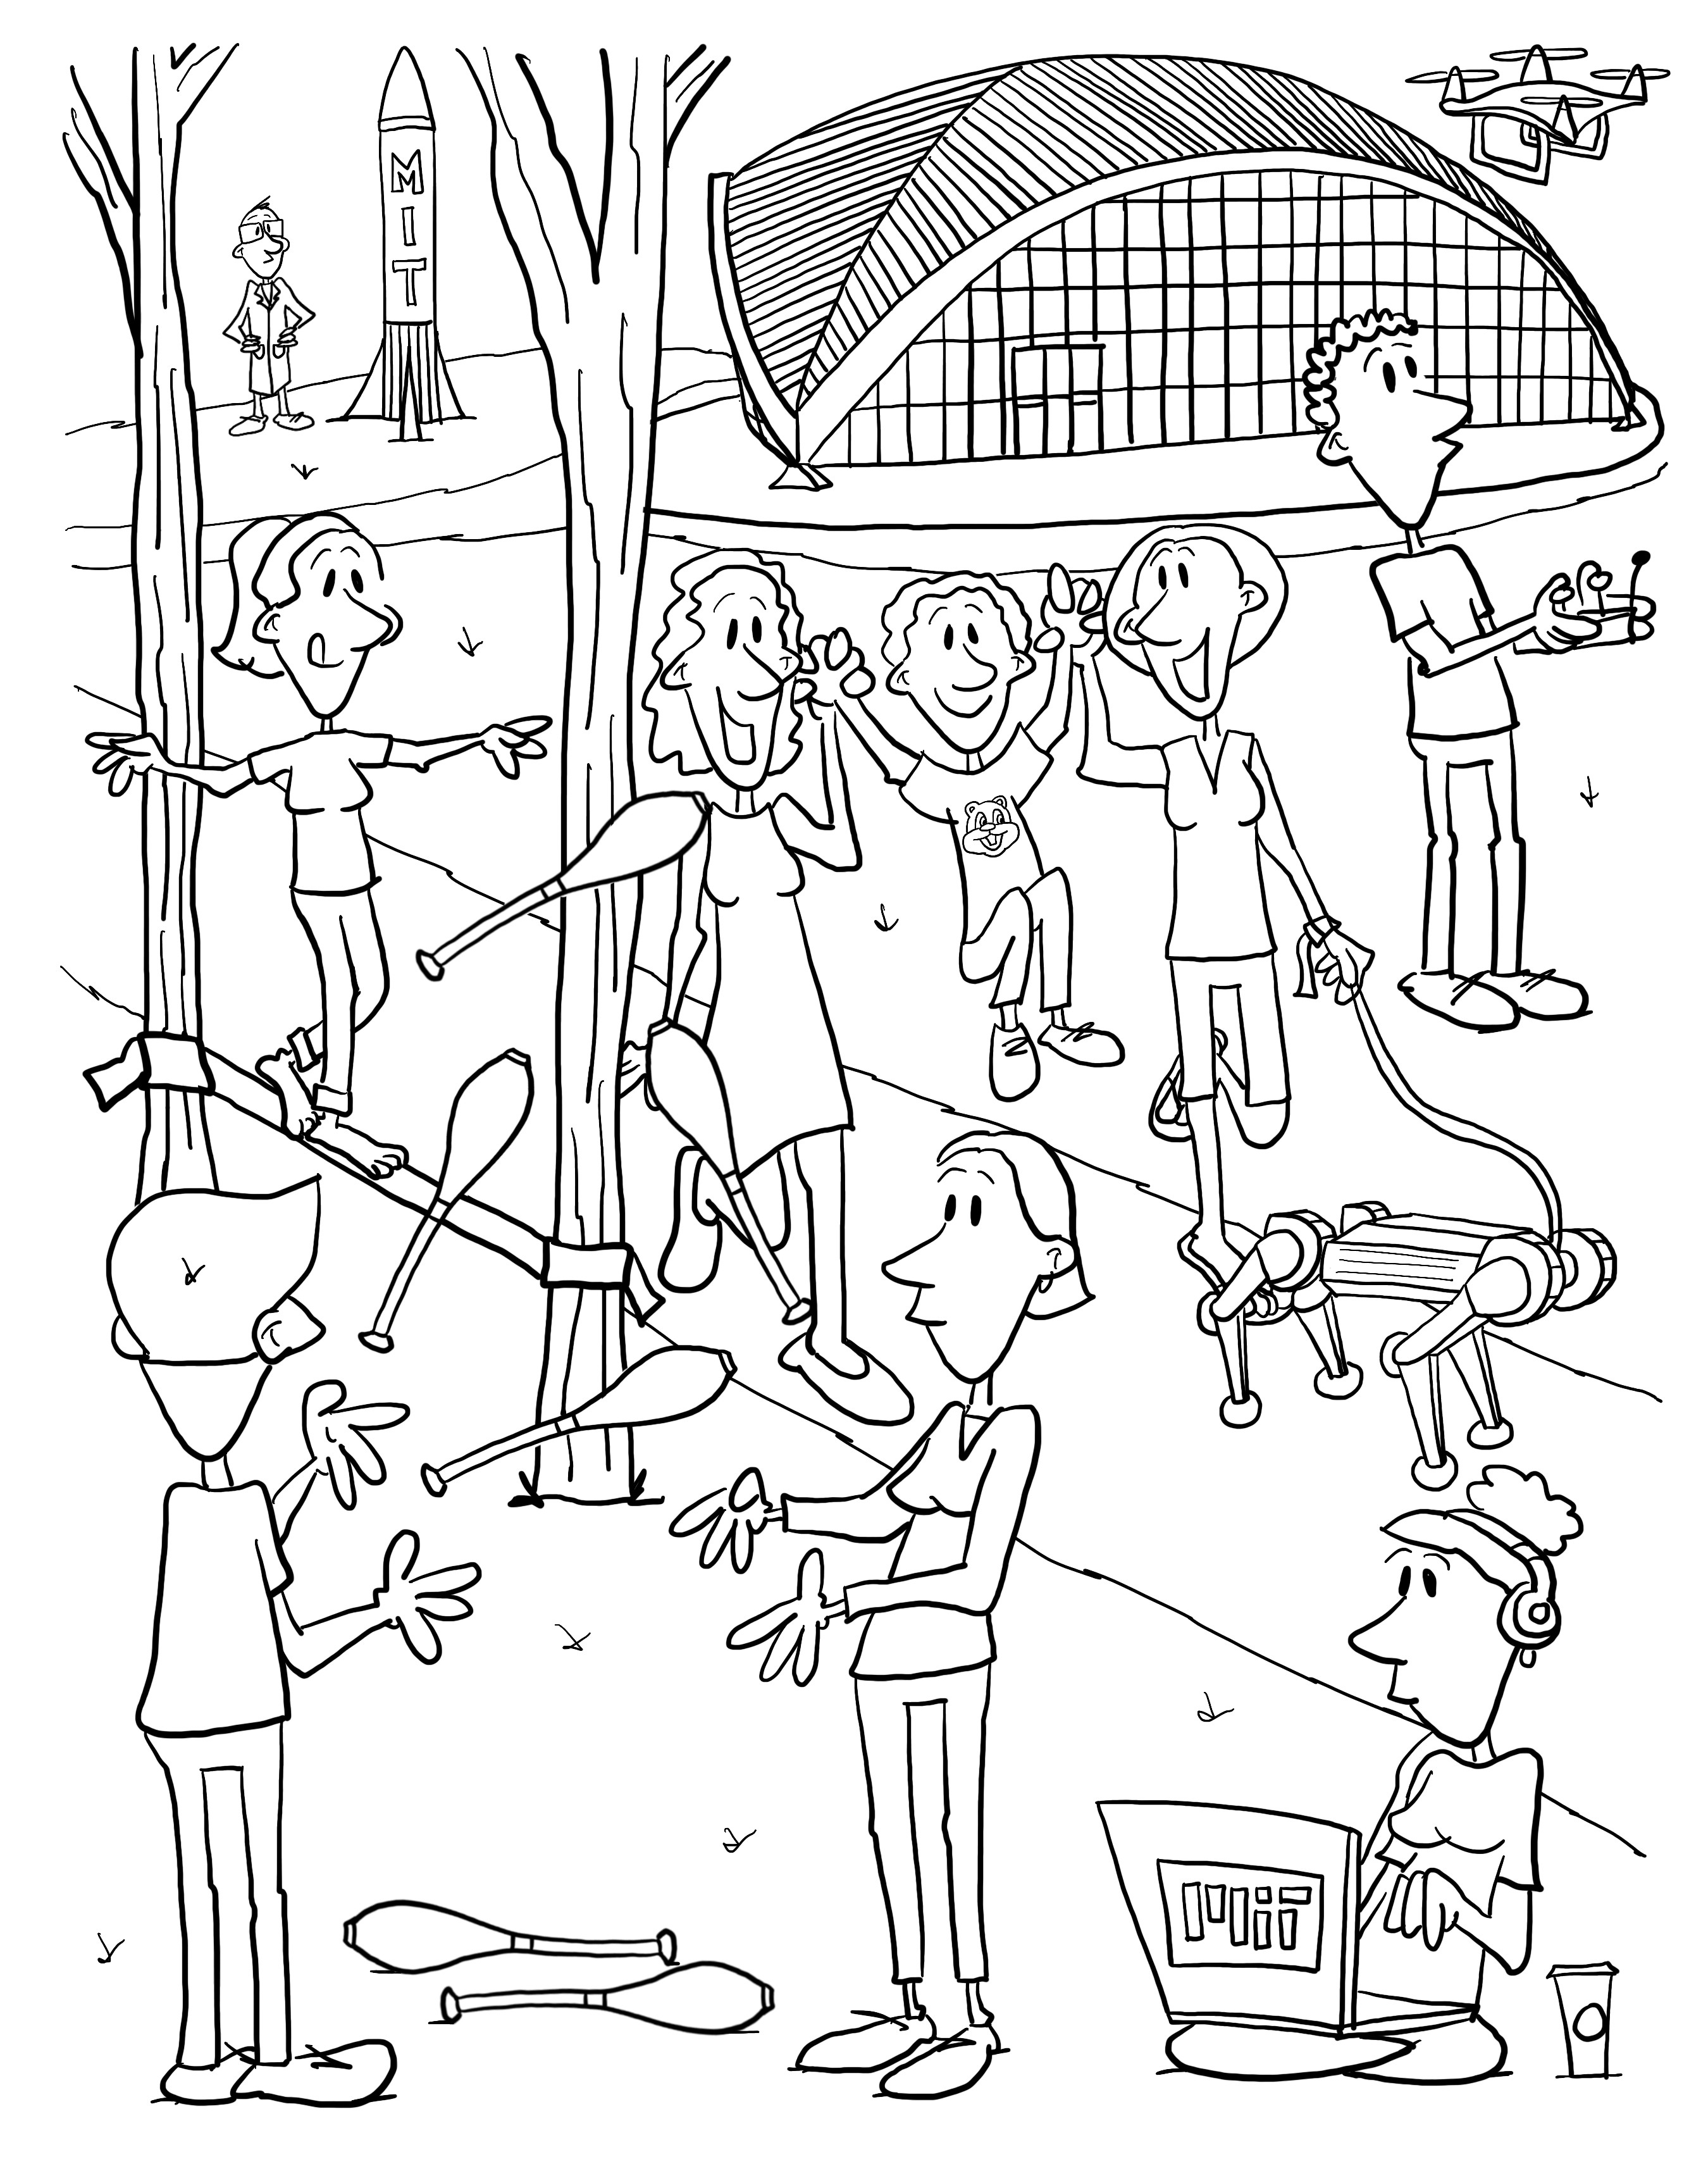 Coloring book page showing MIT students juggling, tightrope walking, drone flying.